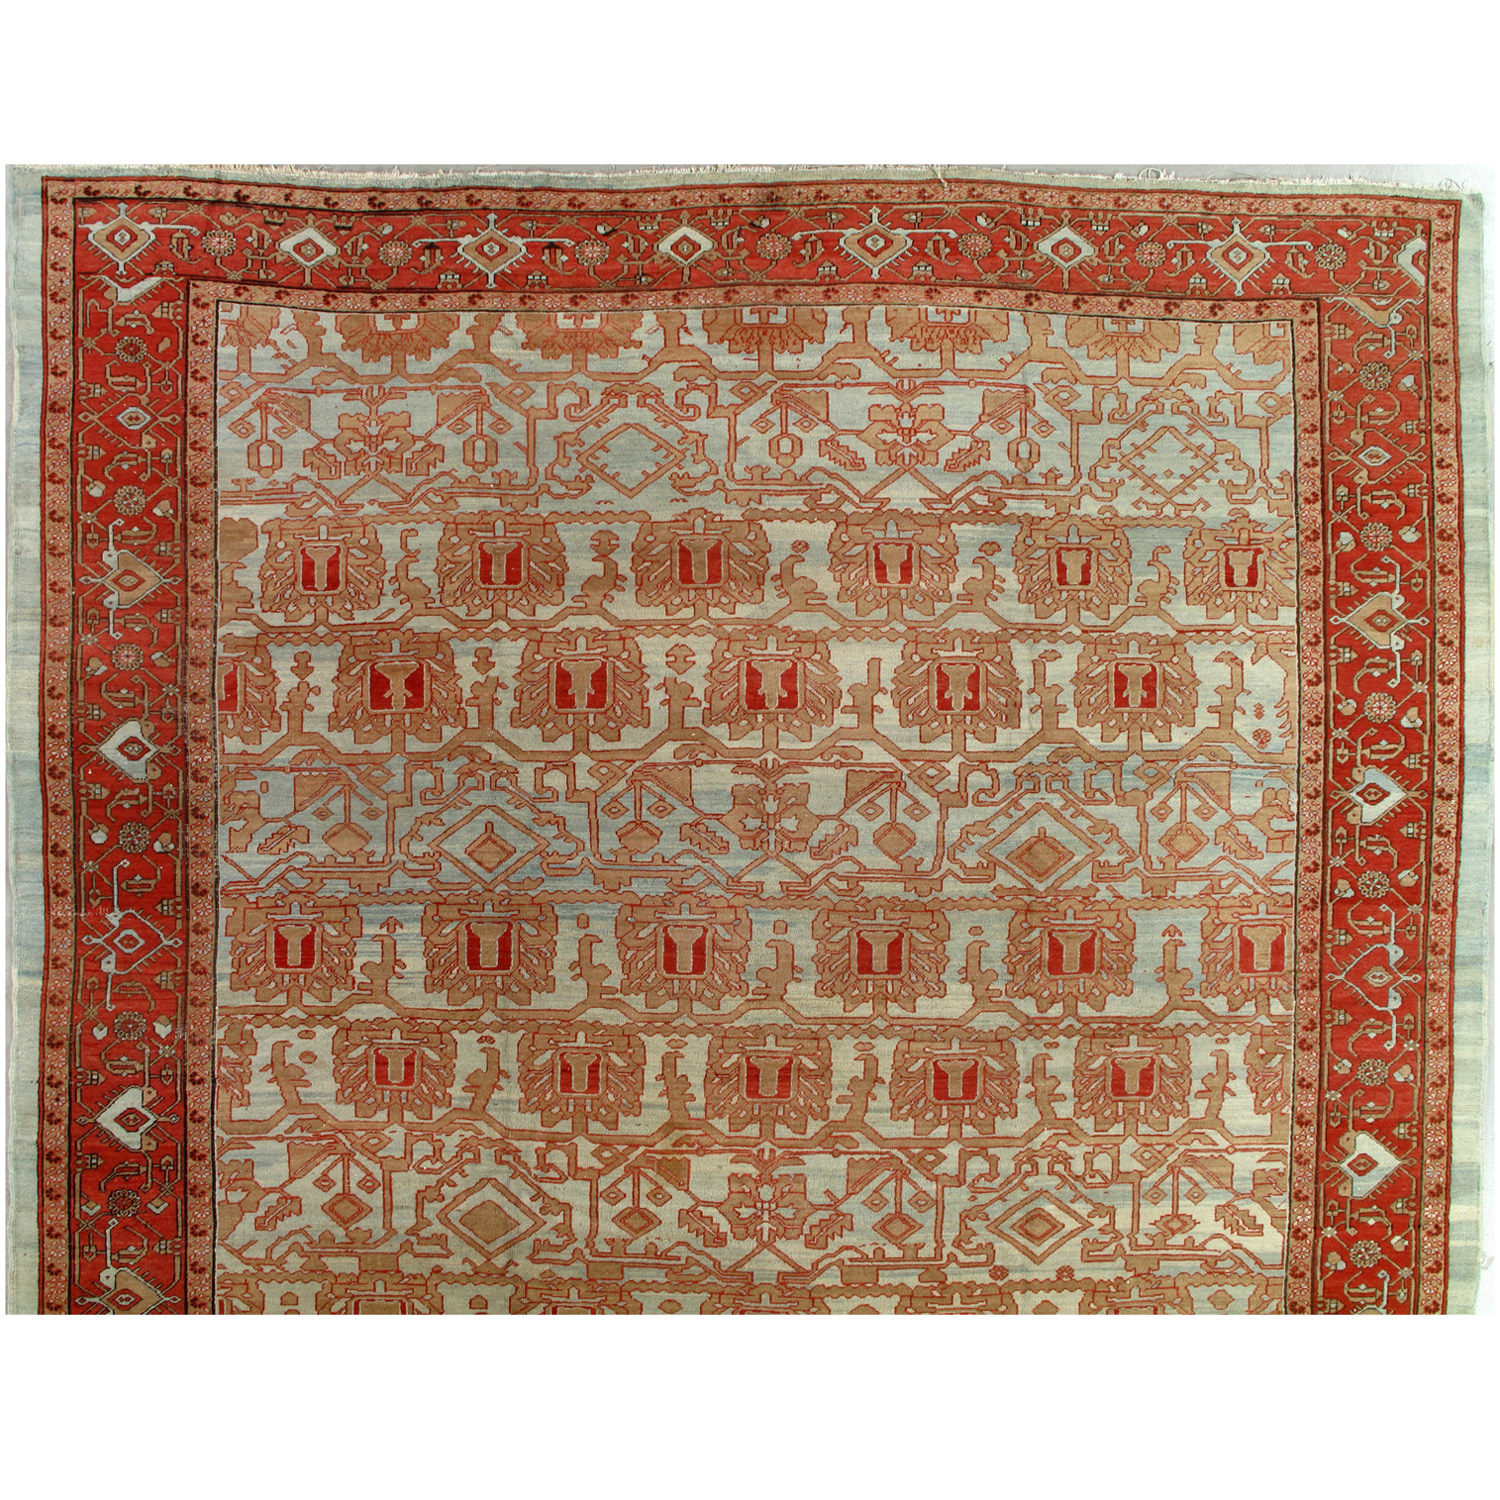 Over Size Antique Bkashaish carpet with all-over design and sky blue field